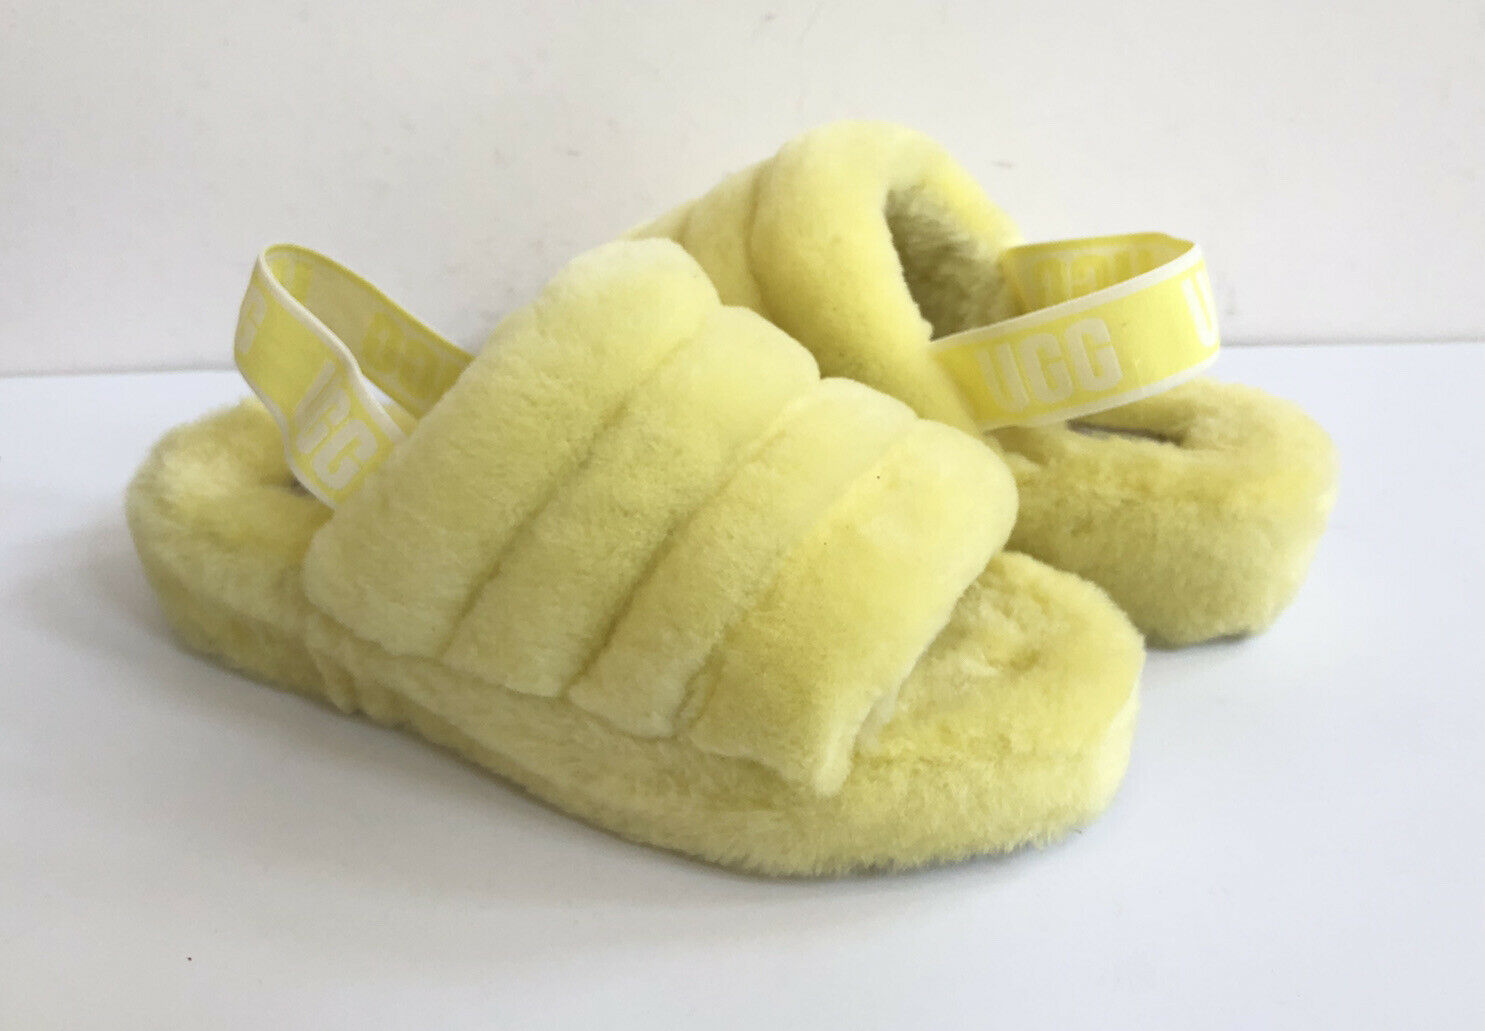 Primary image for UGG FLUFF YEAH SLIDE NEON YELLOW MOCASSIN SLIP ON SANDAL US 12 / EU 43 / UK 10